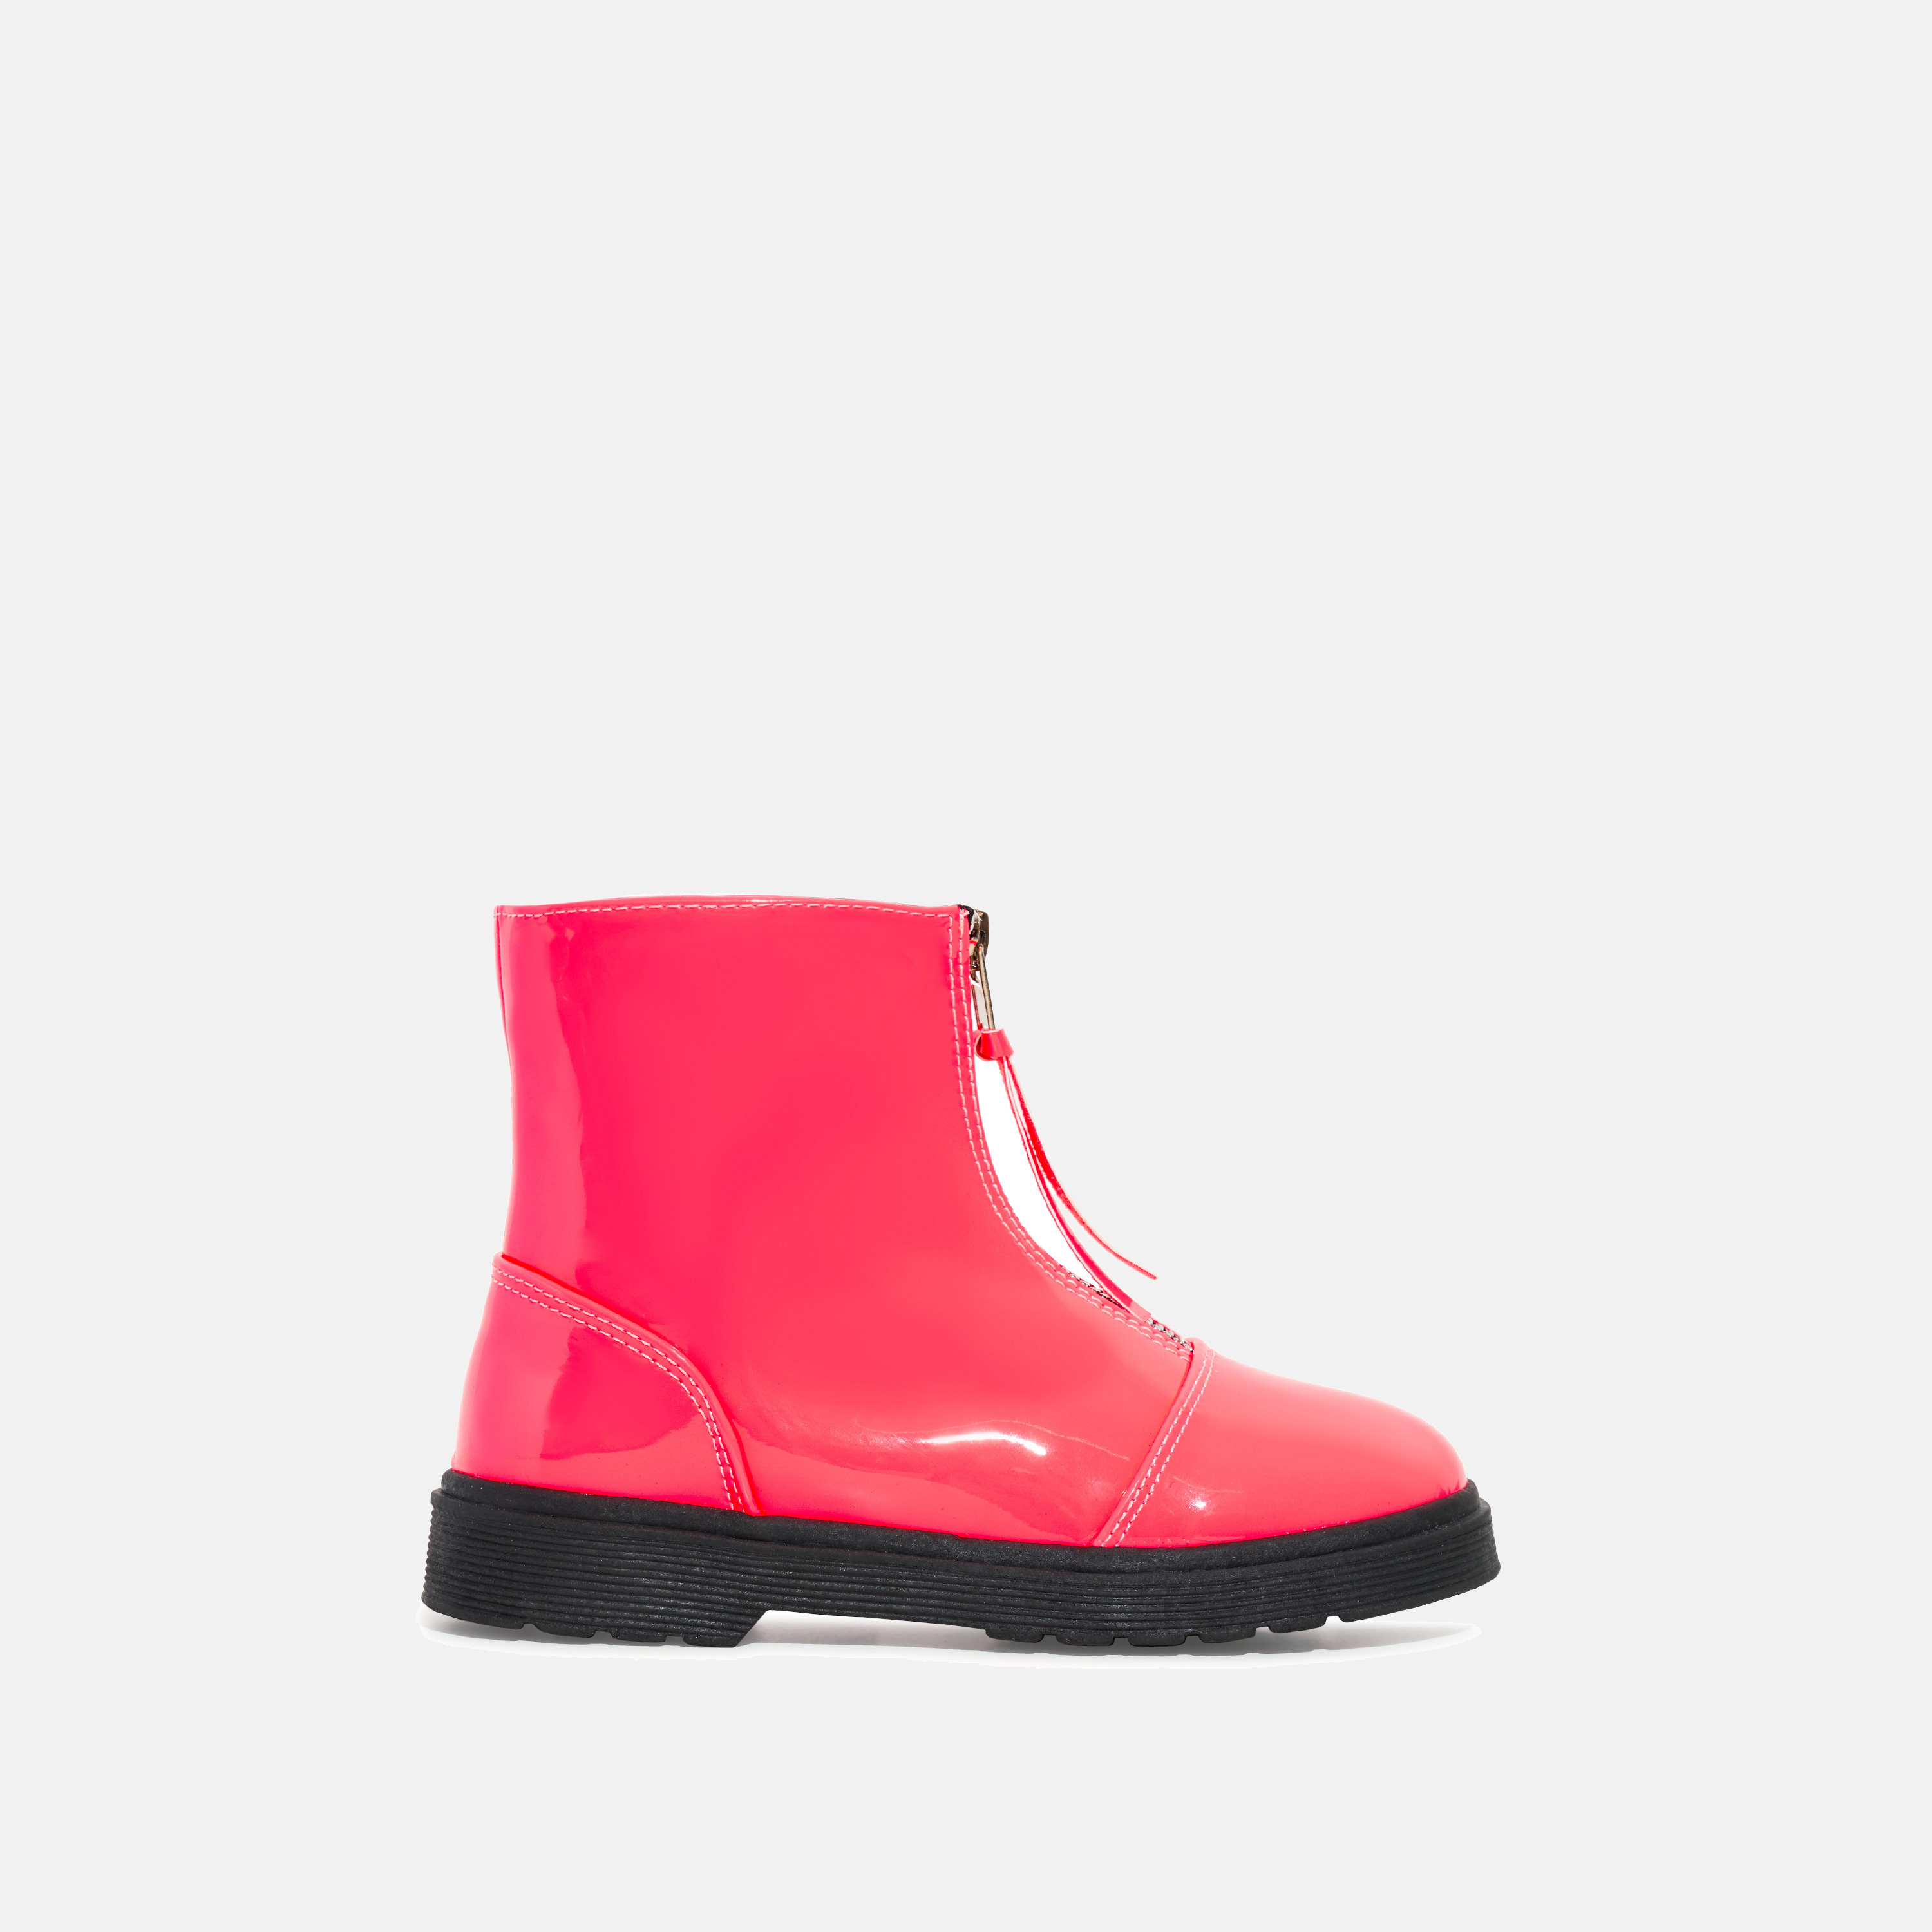 Centre Girl's Zip Detail Ankle Biker Boots In Pink Patent